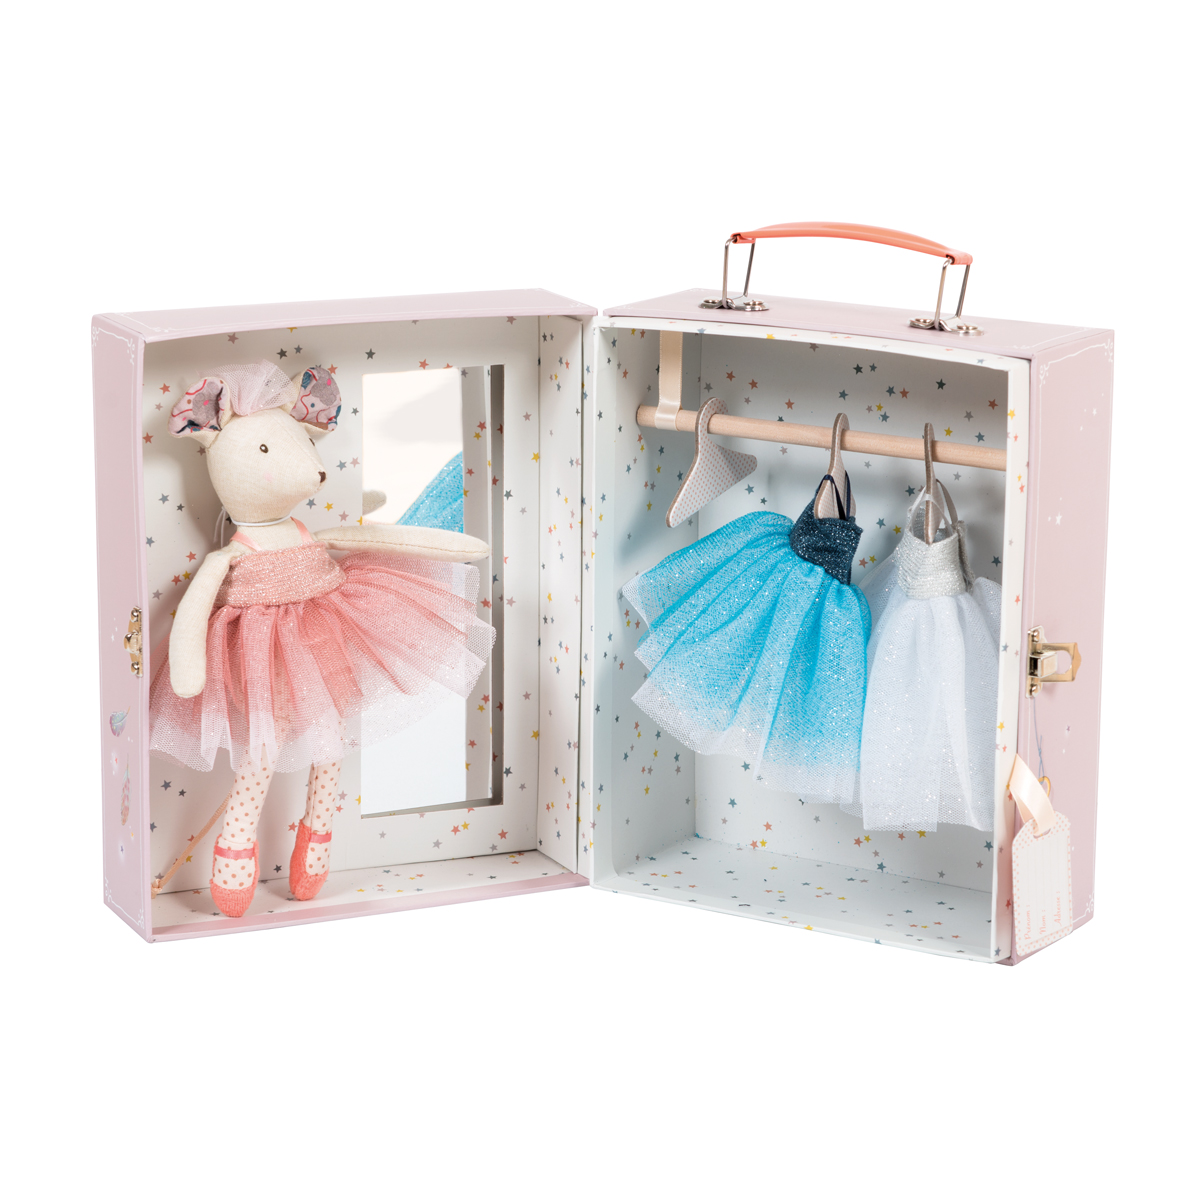 The Moulin Roty Ballerina Mouse Doll Set